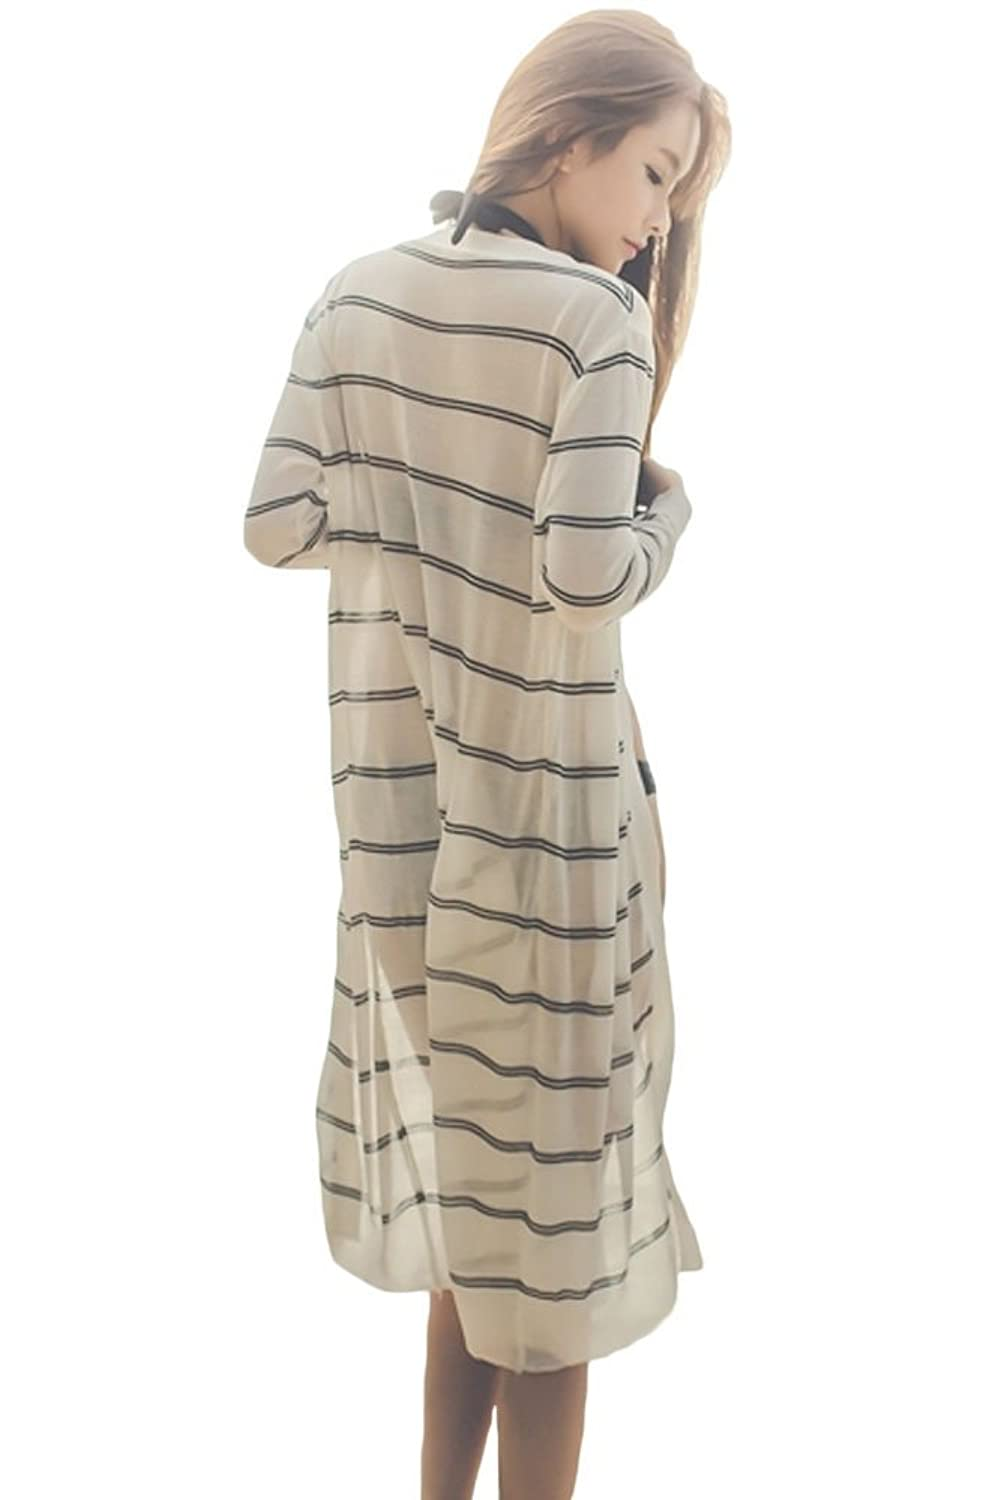 NICE BUY Damen Strandkleid Lose Cardigan Badeanzug Cover Up lang